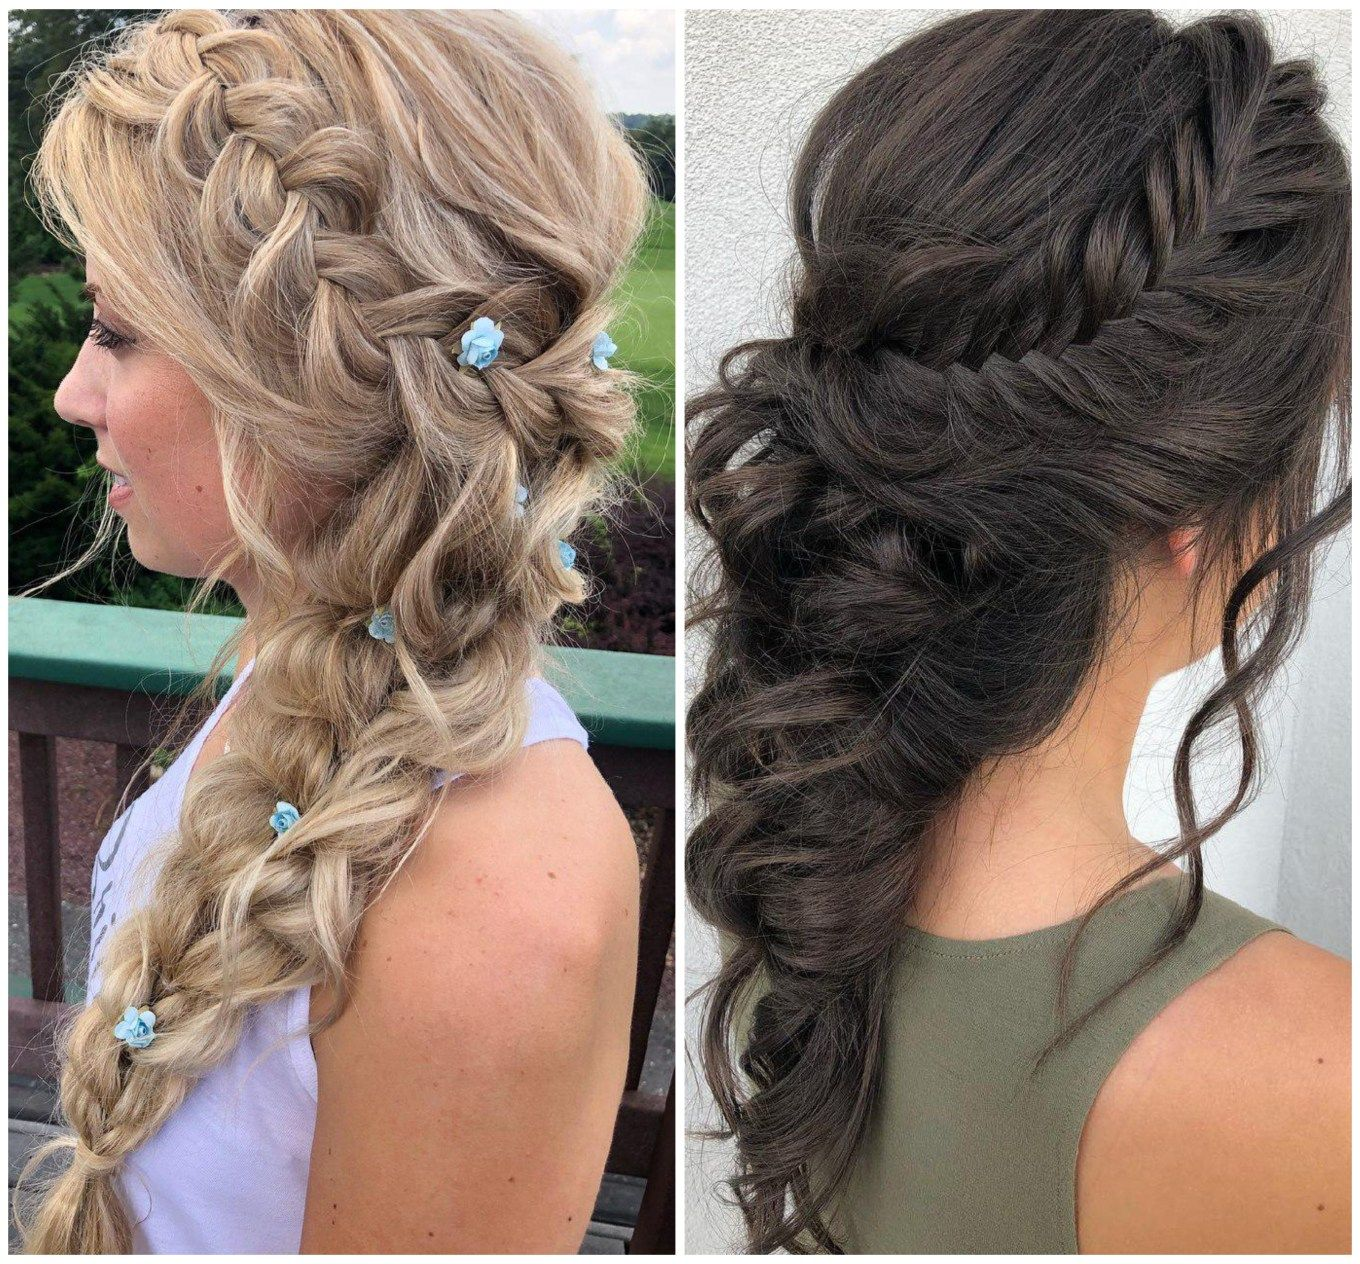 Wedding Hairstyle Trends 2019: 9 Bridal Hair Trends In 2019